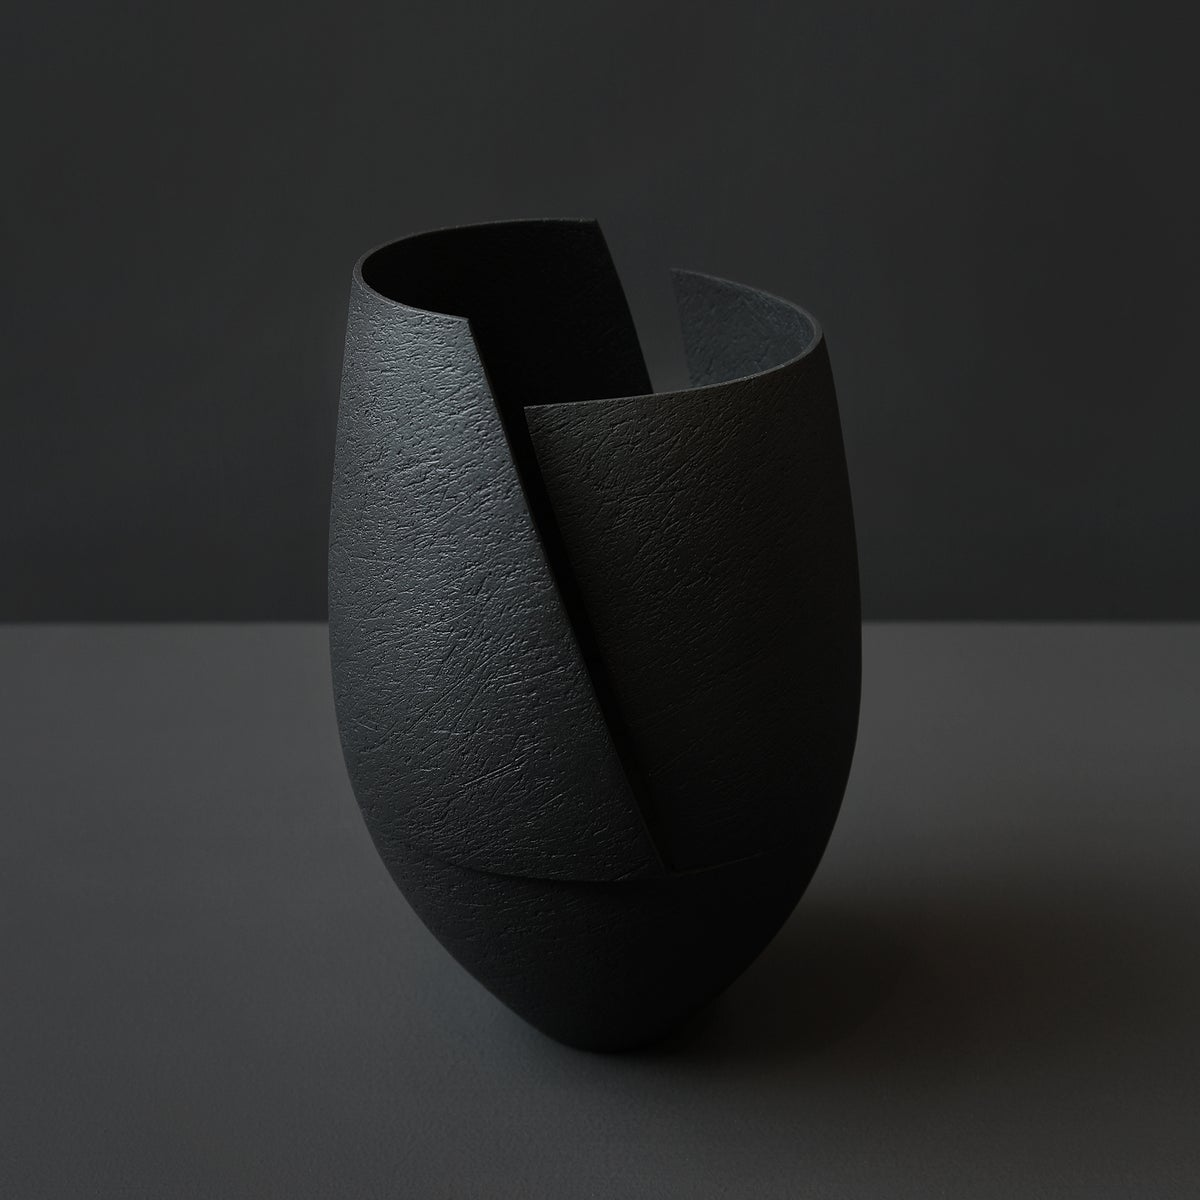 Image of Cut & Altered Vessel #7 by Ashraf Hanna.